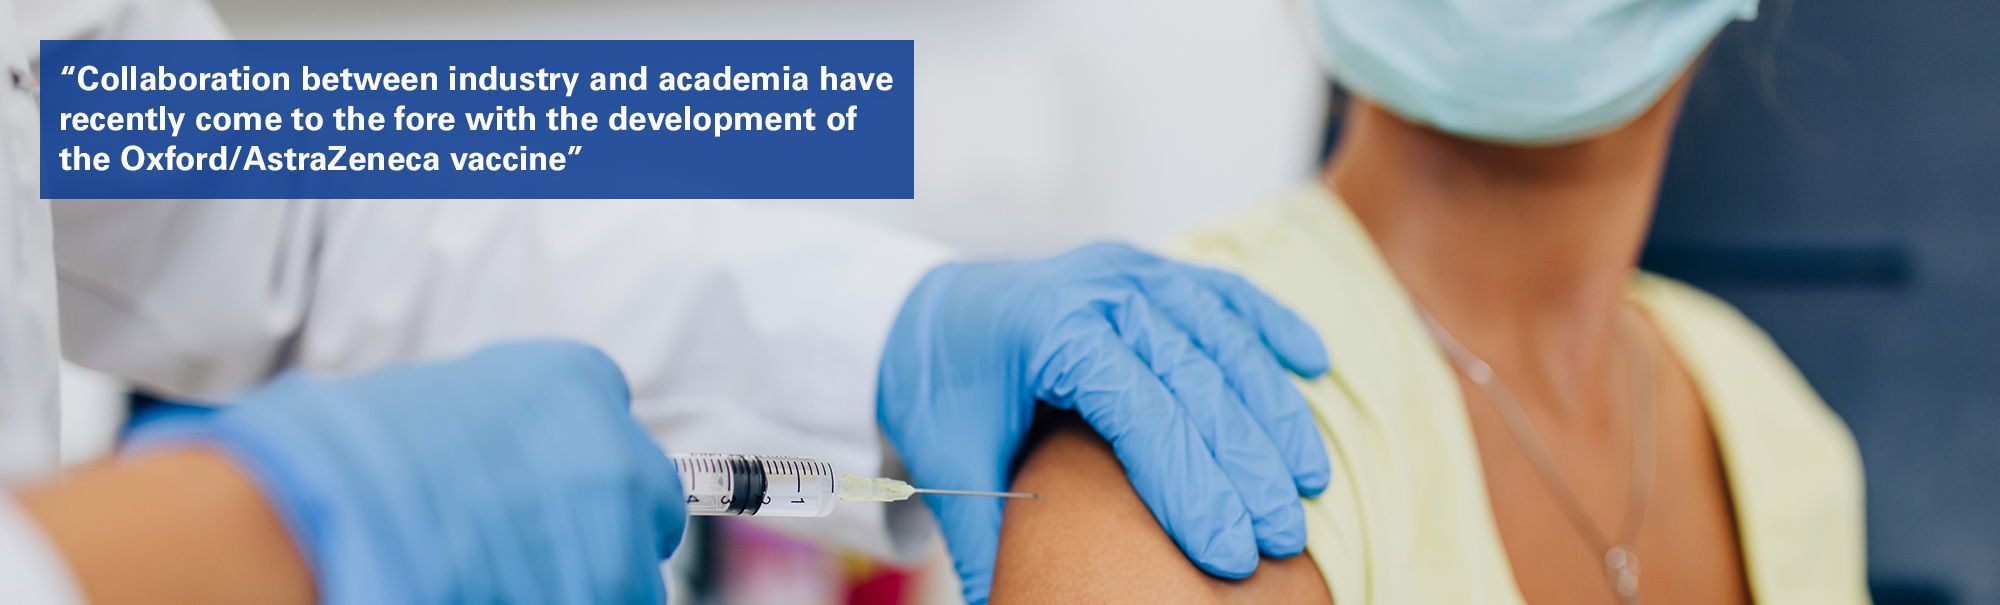 """Woman getting vaccine jab with text overlaid """"Collaboration between industry and academia have recently come to the fore with the development of the Oxford/AstraZeneca vaccine"""""""